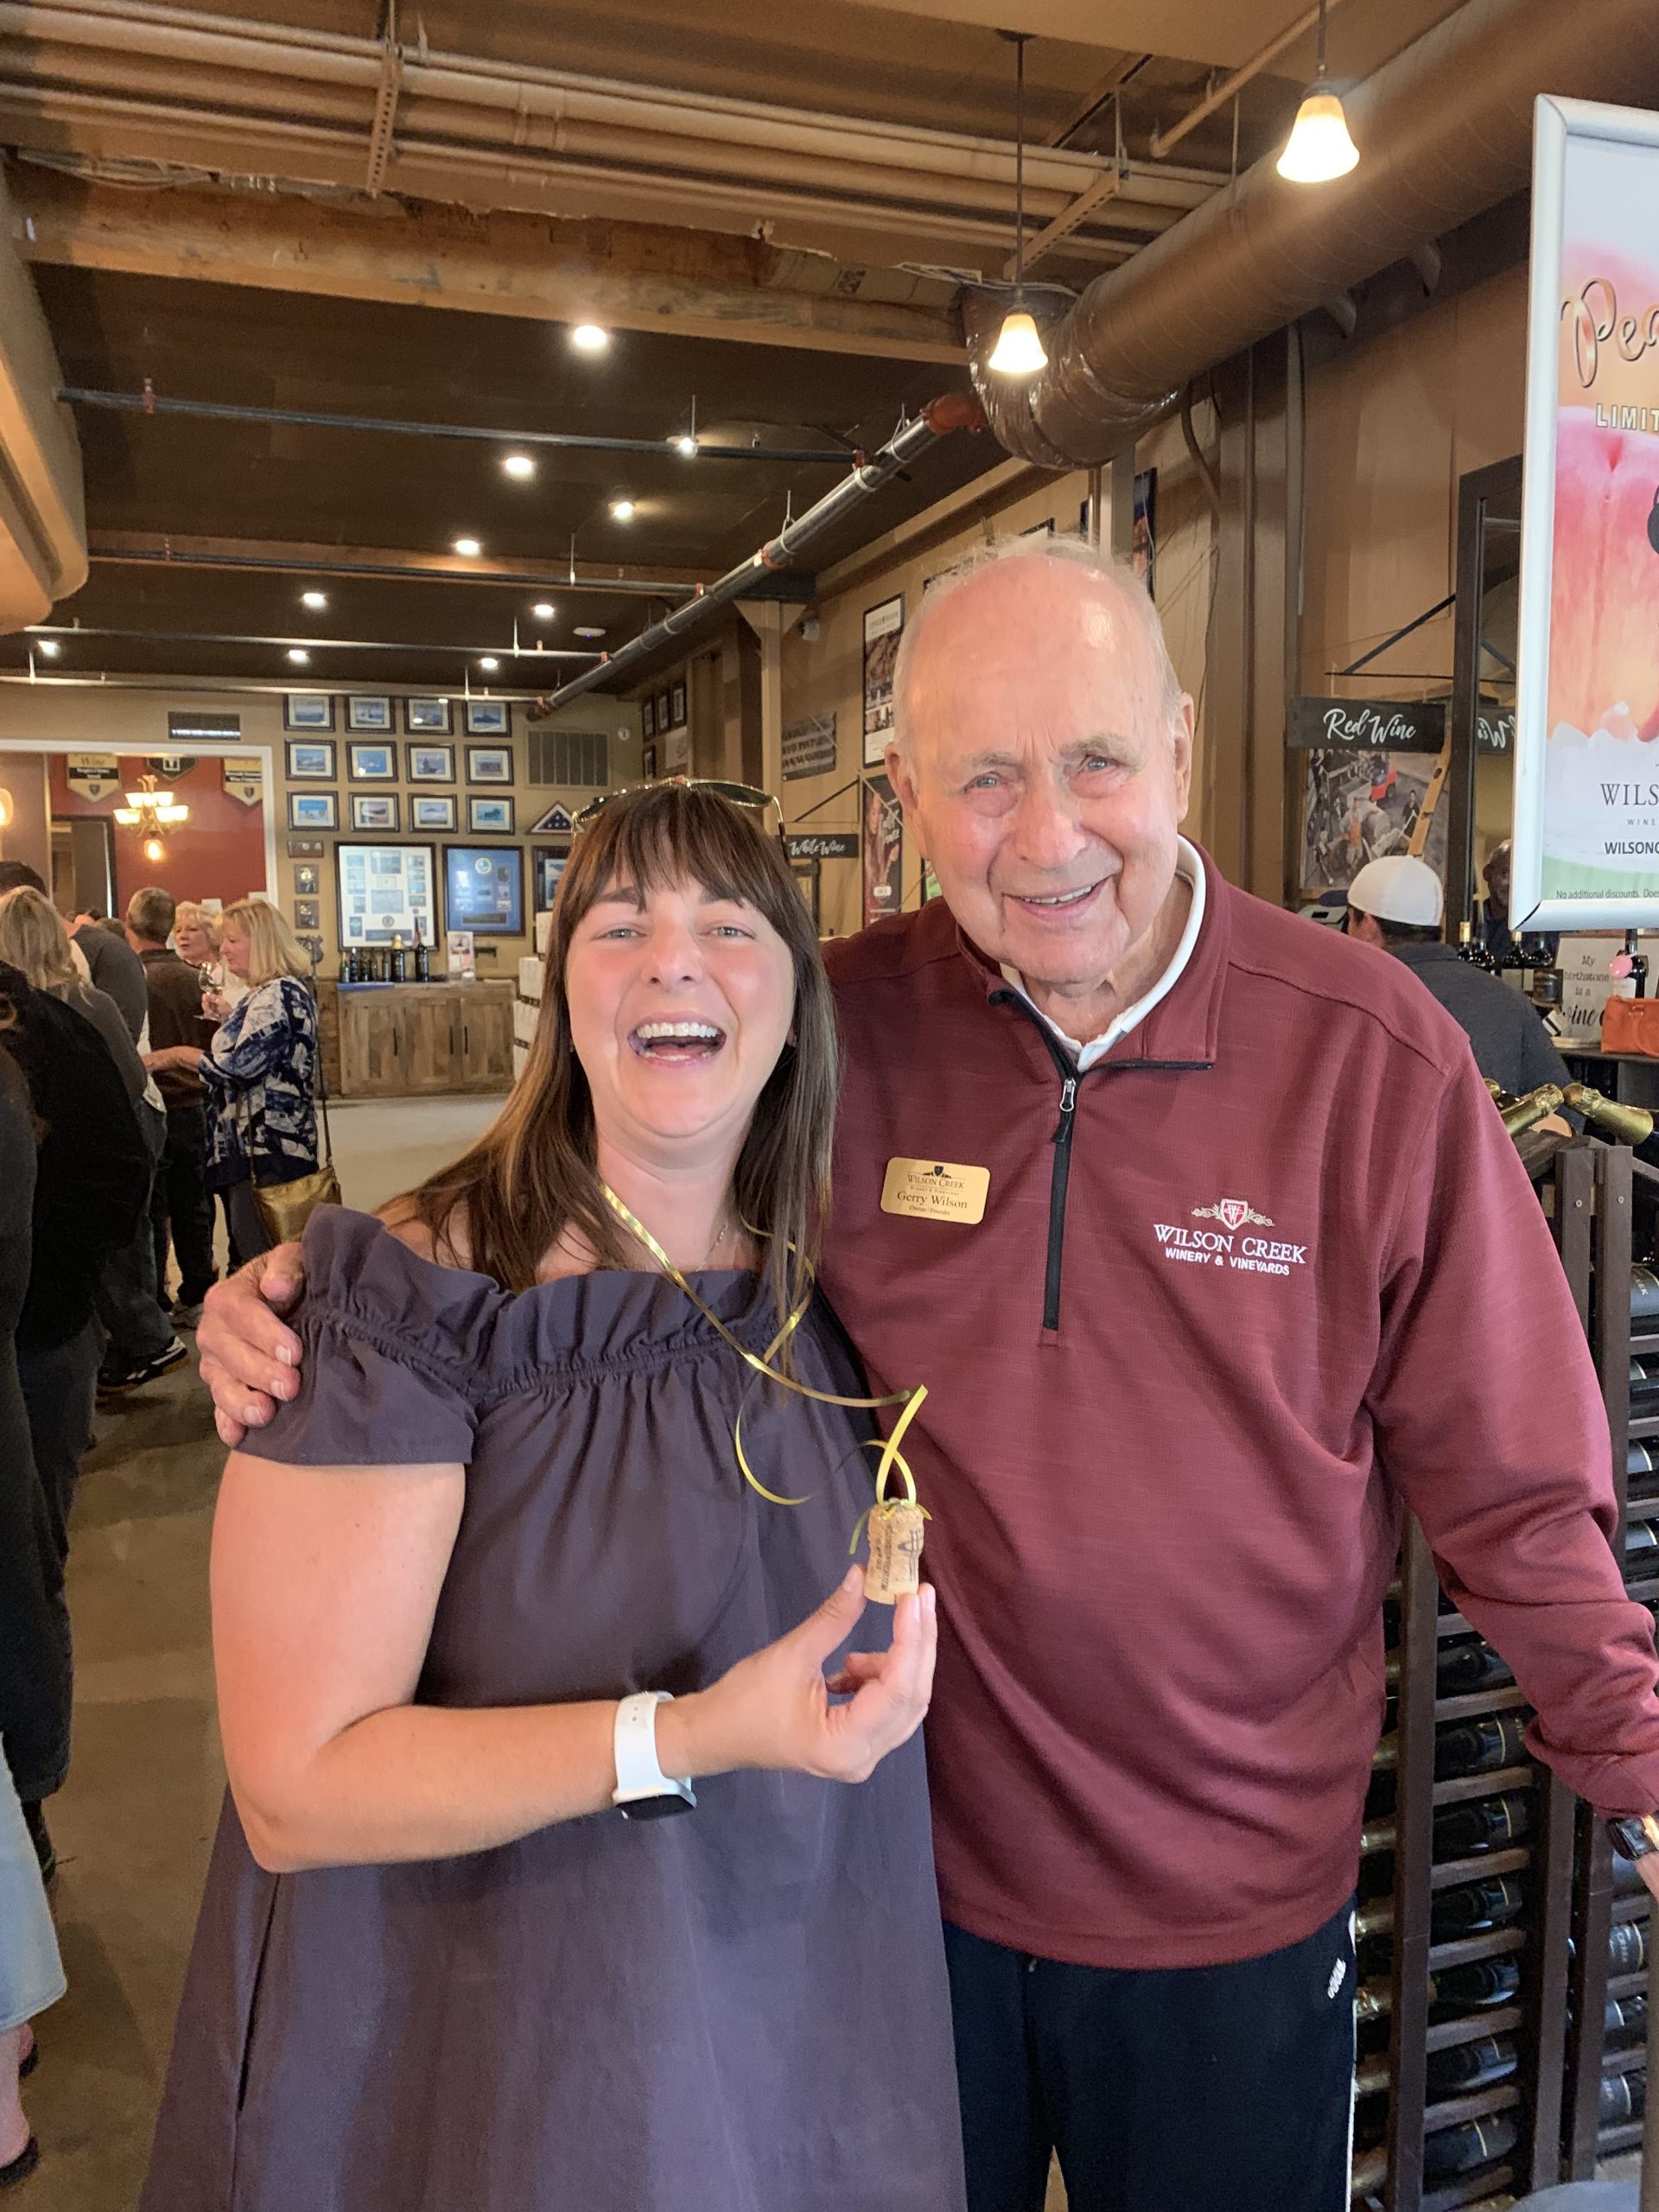 The Bubbly Side of Life with Gerry Wilson at Wilson Creek Winery